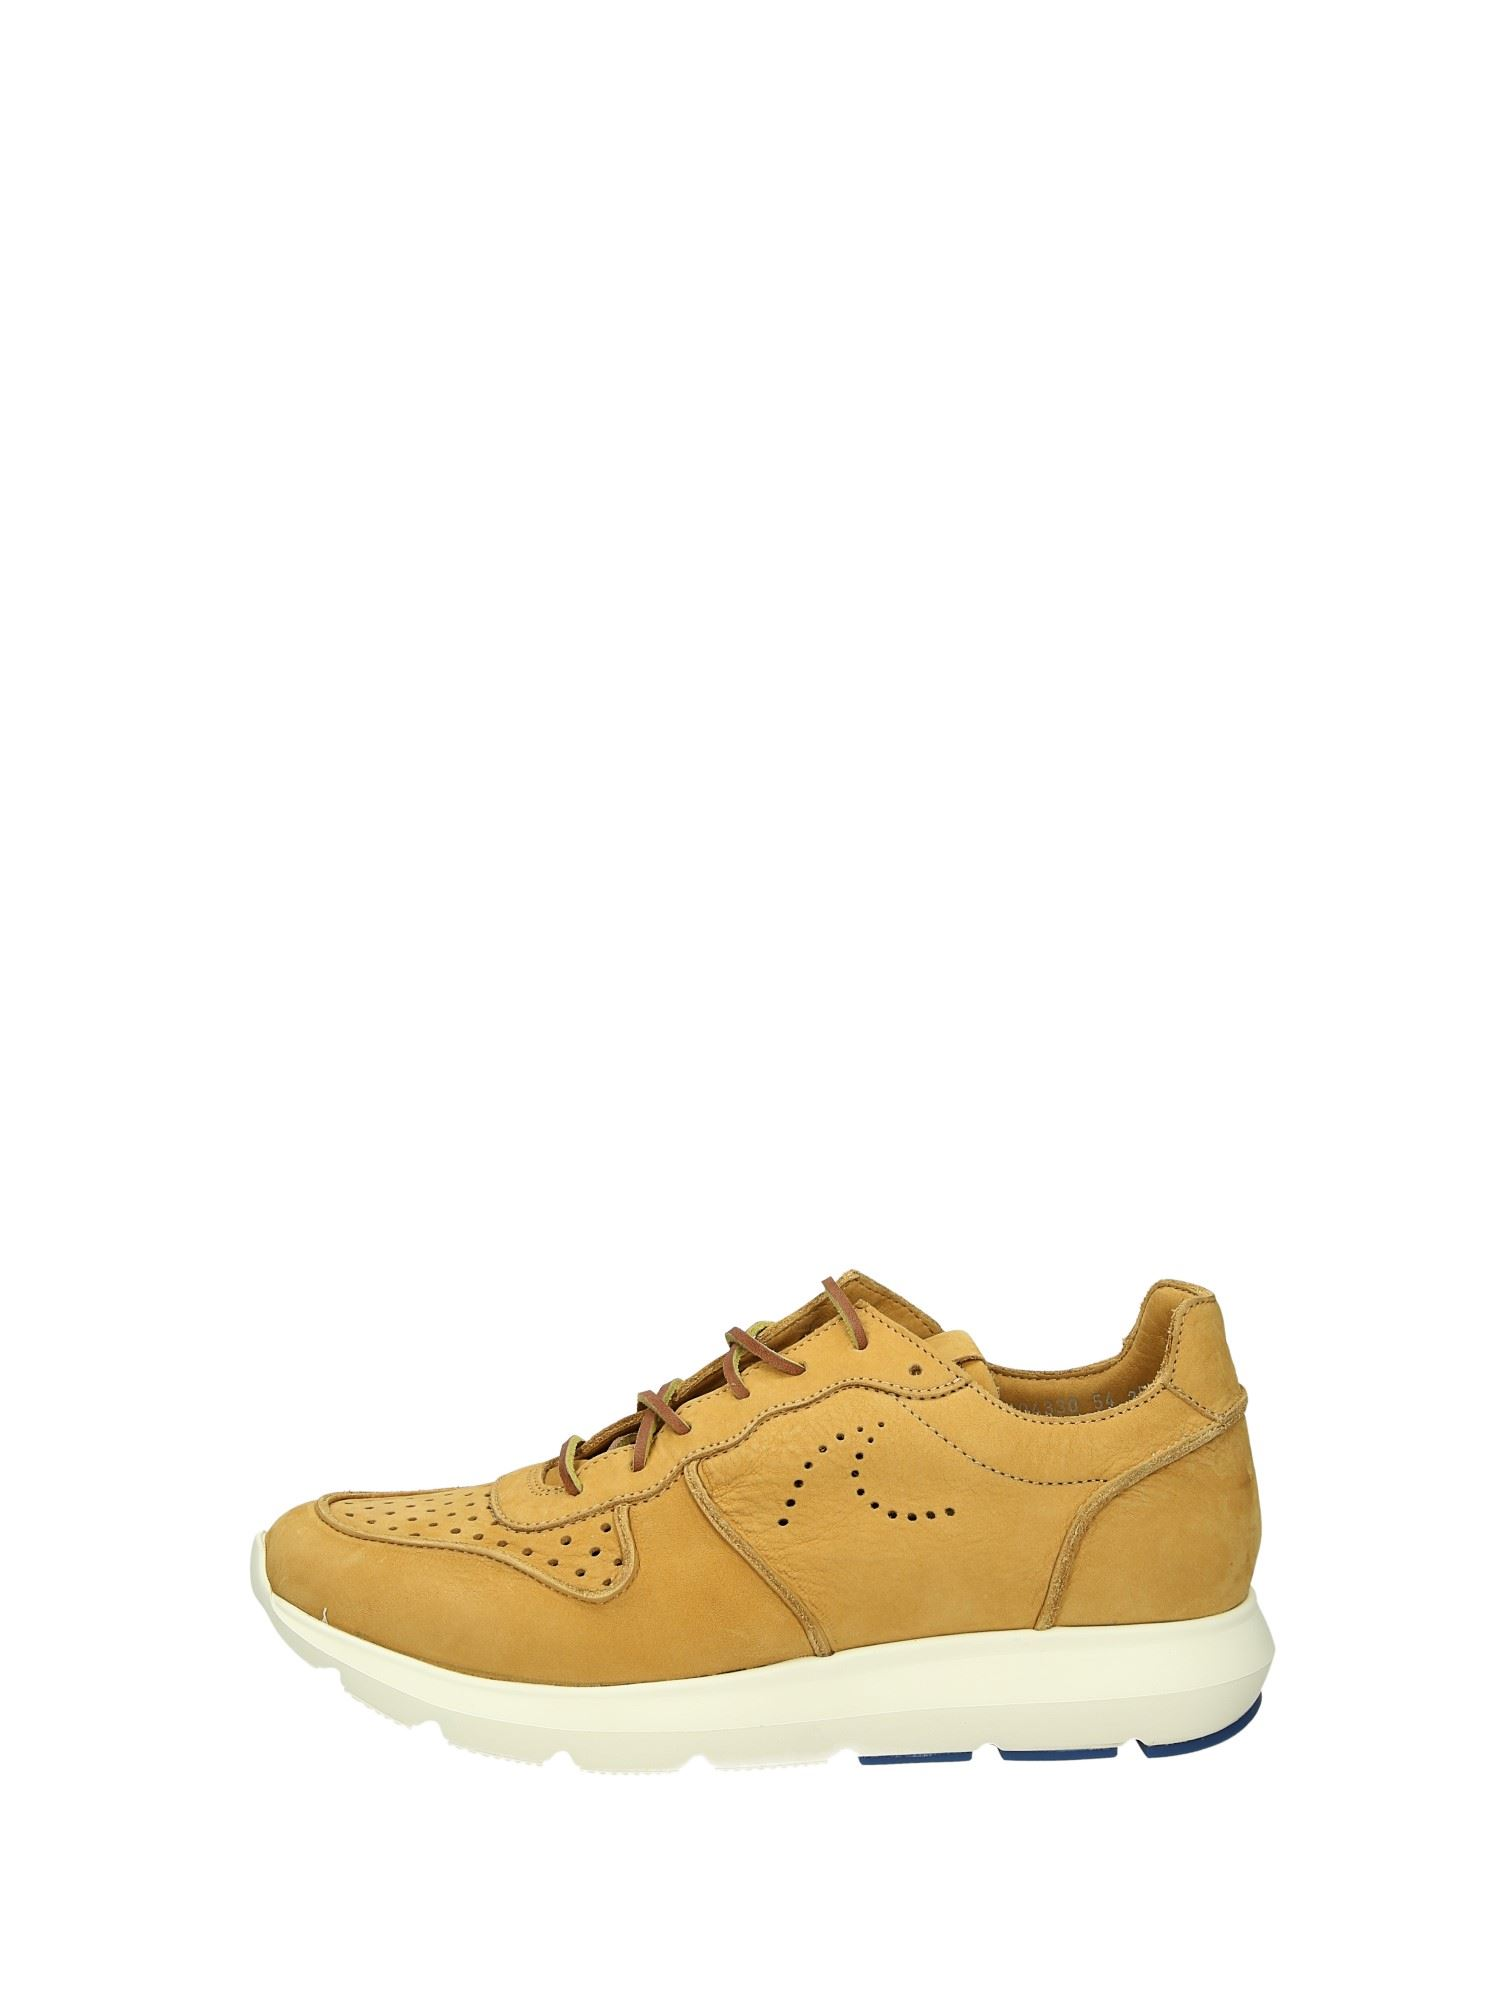 6b0c595493 Docksteps Sneakers Basse Uomo Cuoio | Lalilina